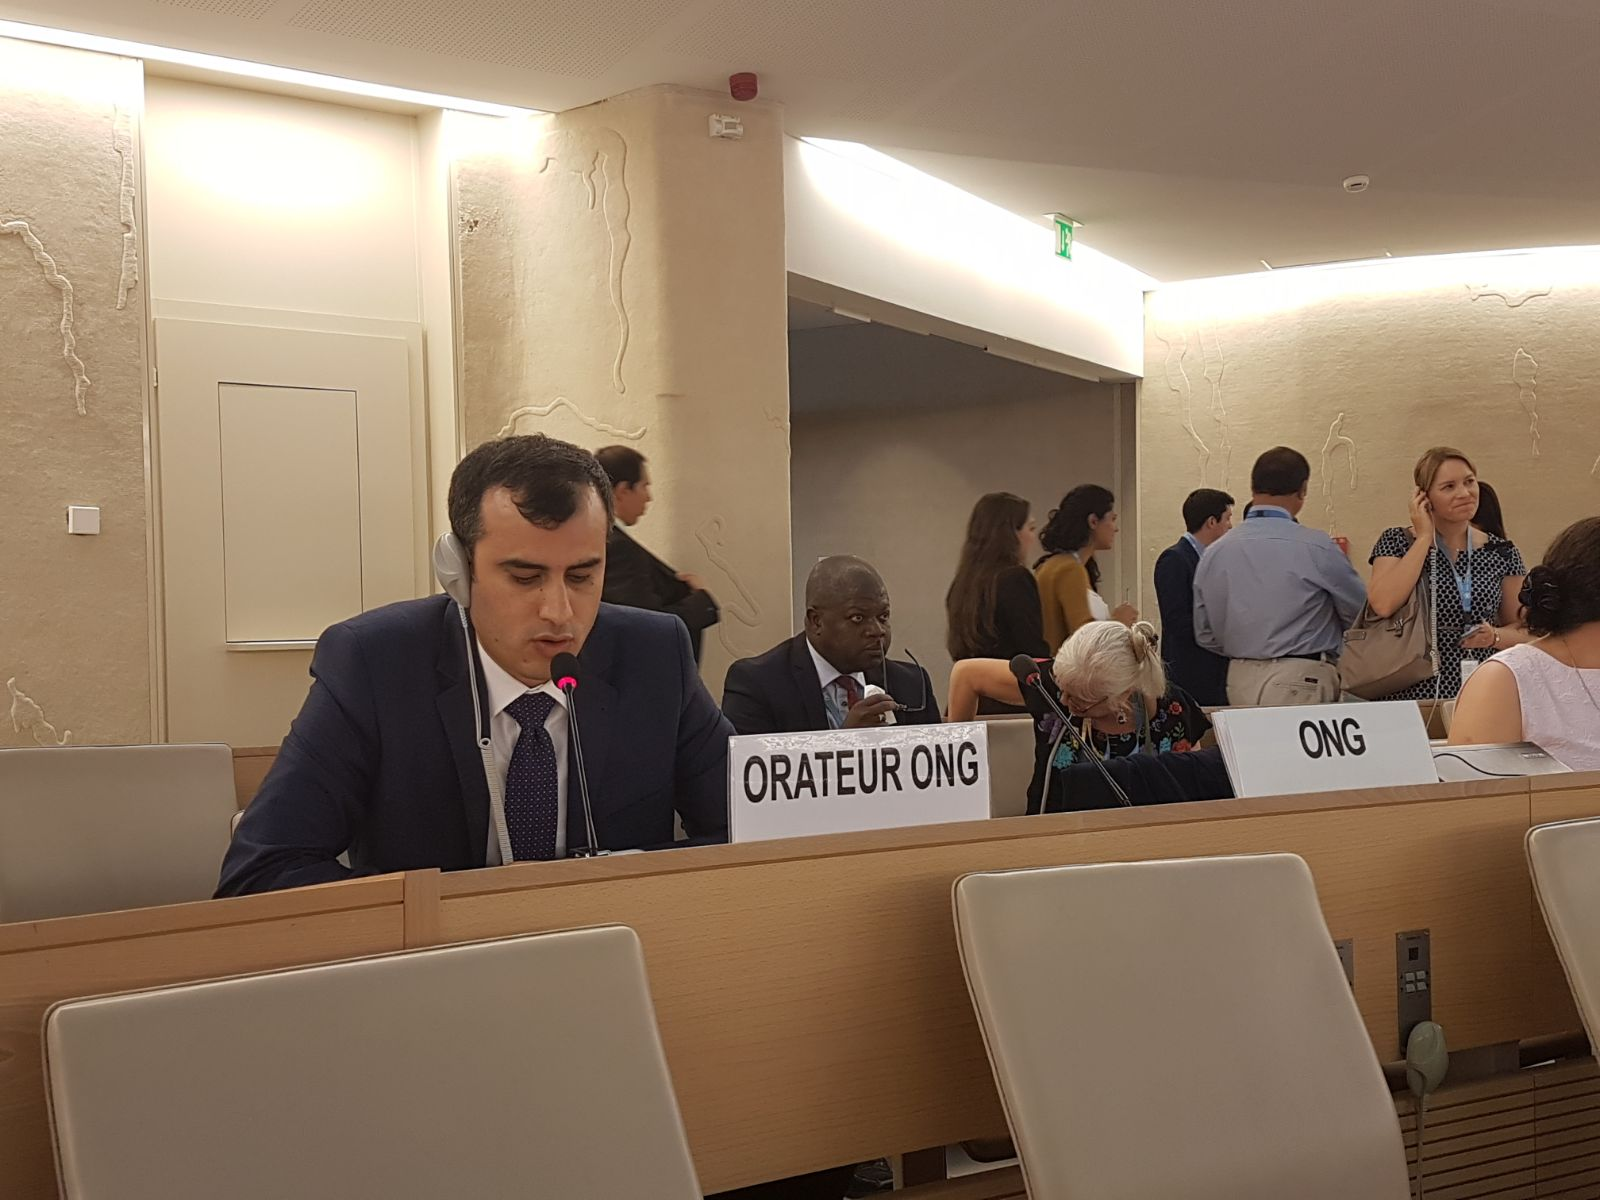 Israeli violations in occupied Jerusalem addressed during UN human rights session  by Euro-Med chairman